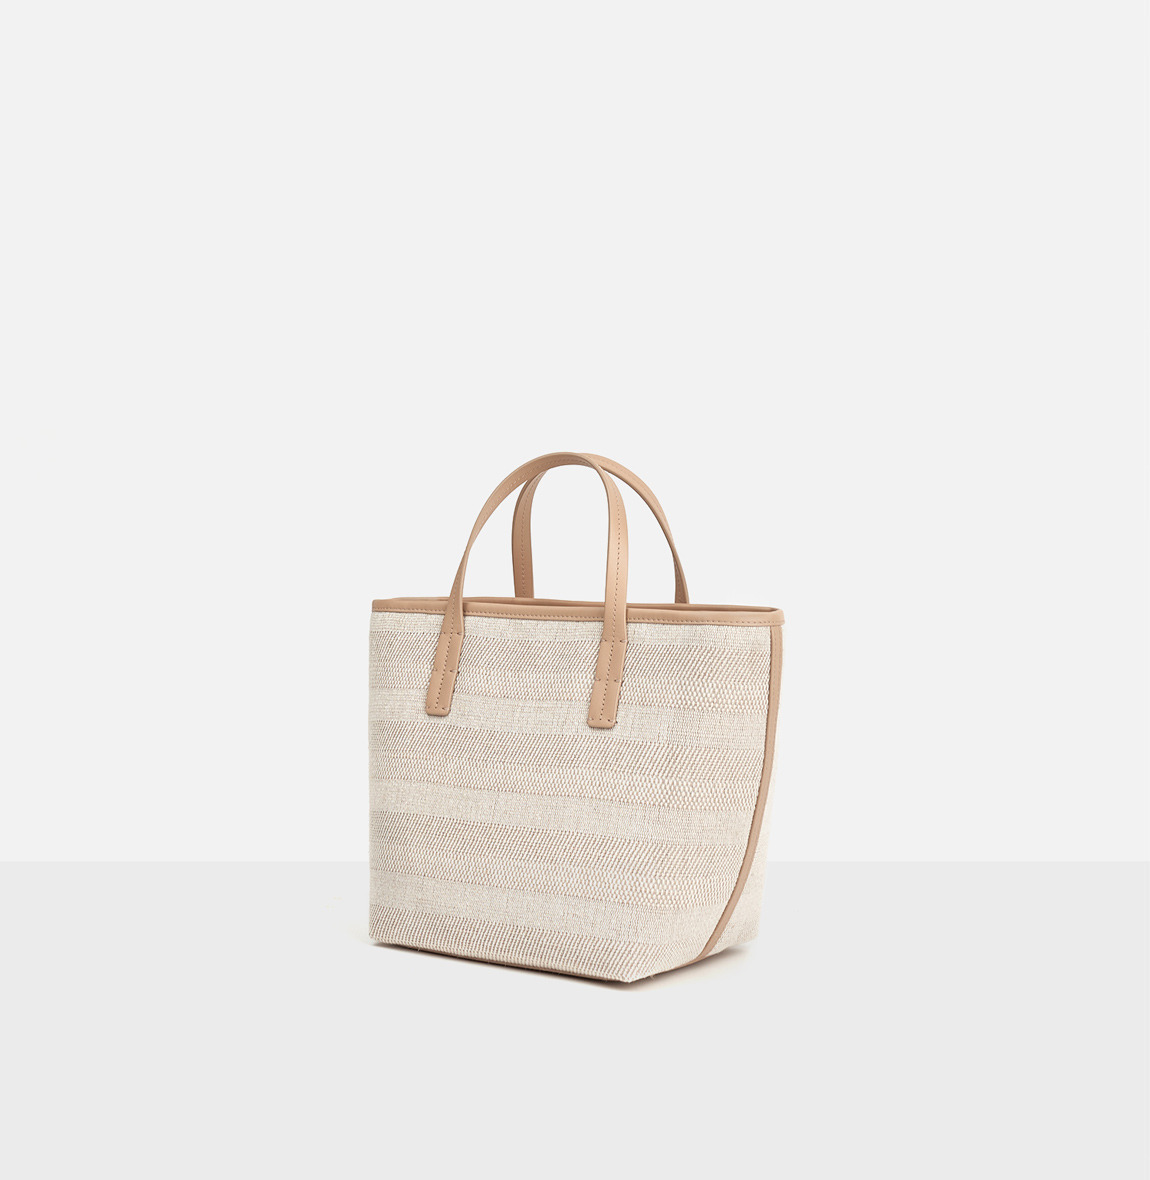 Juty-line tote bag Light ocher